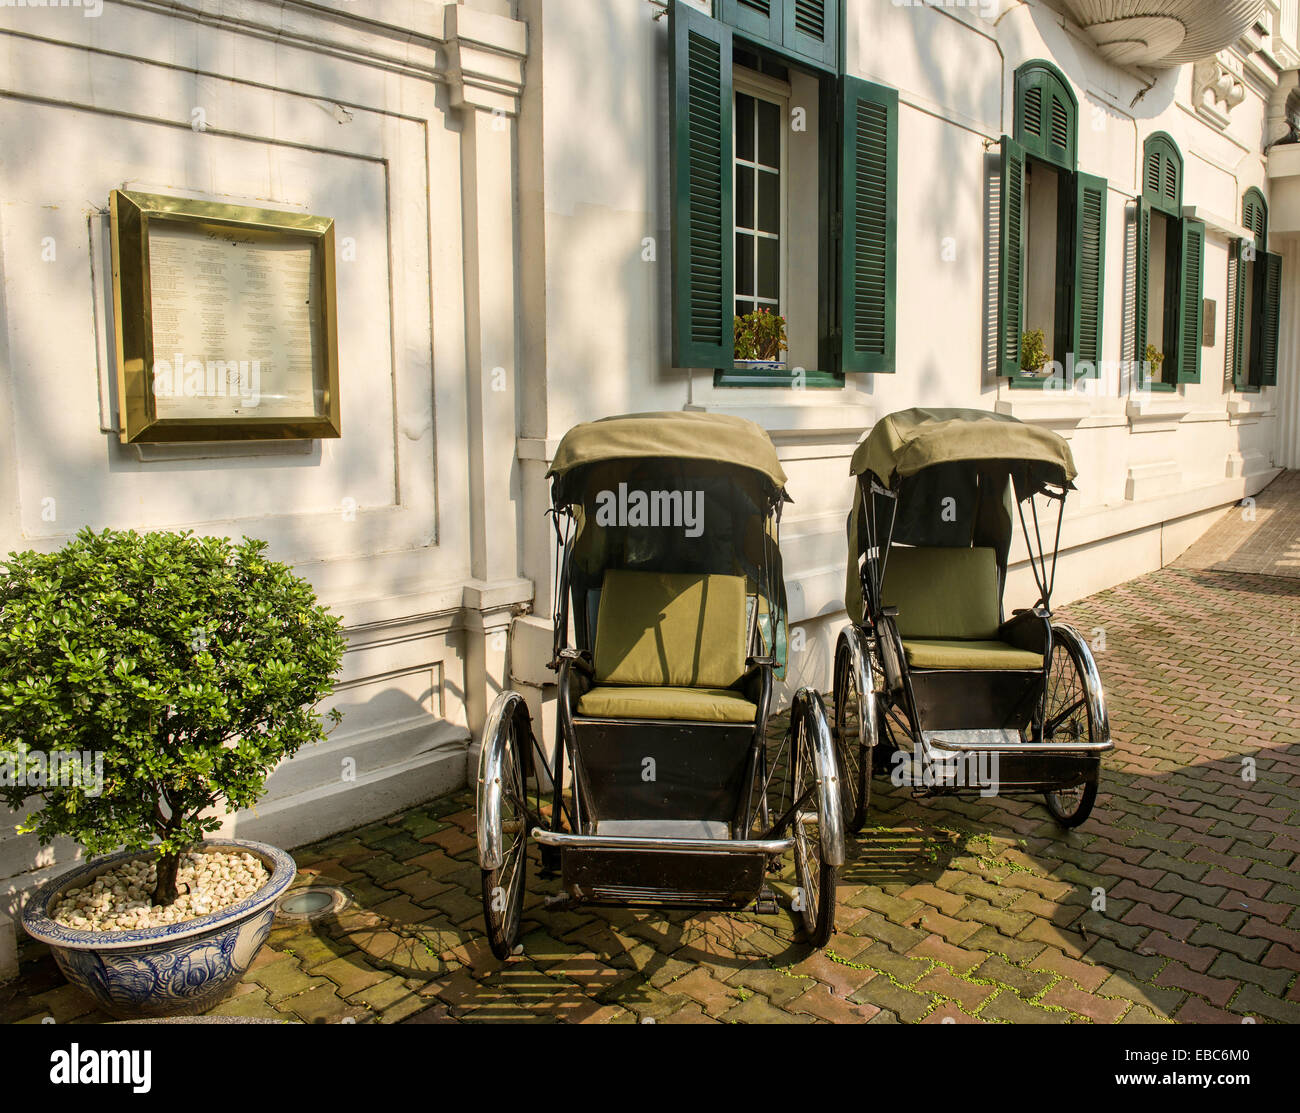 cyclos in front of the historic Metropole Hotel in Hanoi Vietnam. - Stock Image